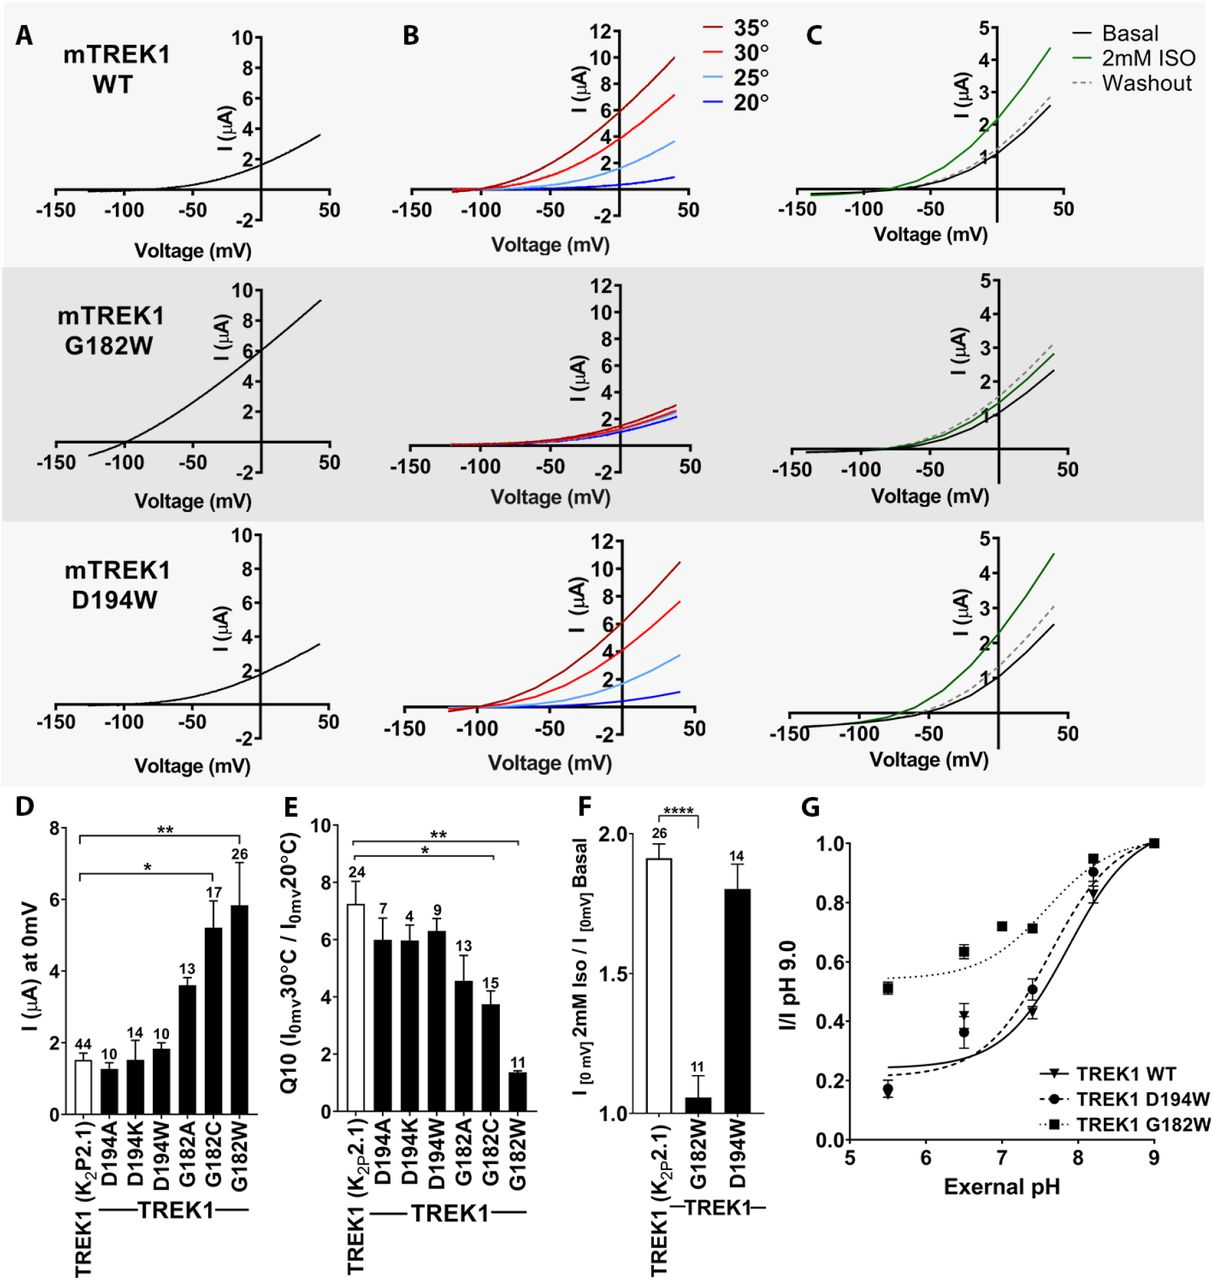 Mass spectrometry analysis of purified zebrafish TREK1. Results of MS analysis of TREK1 WT in the (top) absence of reaction with Azi-isoflurane, (second) following reaction with 30 μM Azi-isoflurane, (third) following reaction with 30 μM Azi-isoflurane in the presence of 3mM Isoflurane, or (bottom) TREK1 G182W following reaction with 30 μM Azi-isoflurane. Regions positively identified by mass spectrometry analysis are shown in red in the TREK1 structural model (PDB ID 6CQ6) and in black font in the sequence data. Regions absent from MS data occurred in five distinct regions, all of which are displayed in matching color in both the structural model and the sequence data. The G182 and K194 residues found to be modified by azi-isoflurane in TREK1 WT are shows as pink spheres in the structural model, and positive photolabeling is denoted in the sequence data by enlarged font and pink color. The A67 and T303 residues modified by azi-isoflurane in TREK1 G182W are similarly denoted in blue. The initial and final residues in the TREK1 protein were not identified in the majority of the MS results and are shown in grey to denote absence from positive MS identification. These residues are not present in the TREK1 structural model.